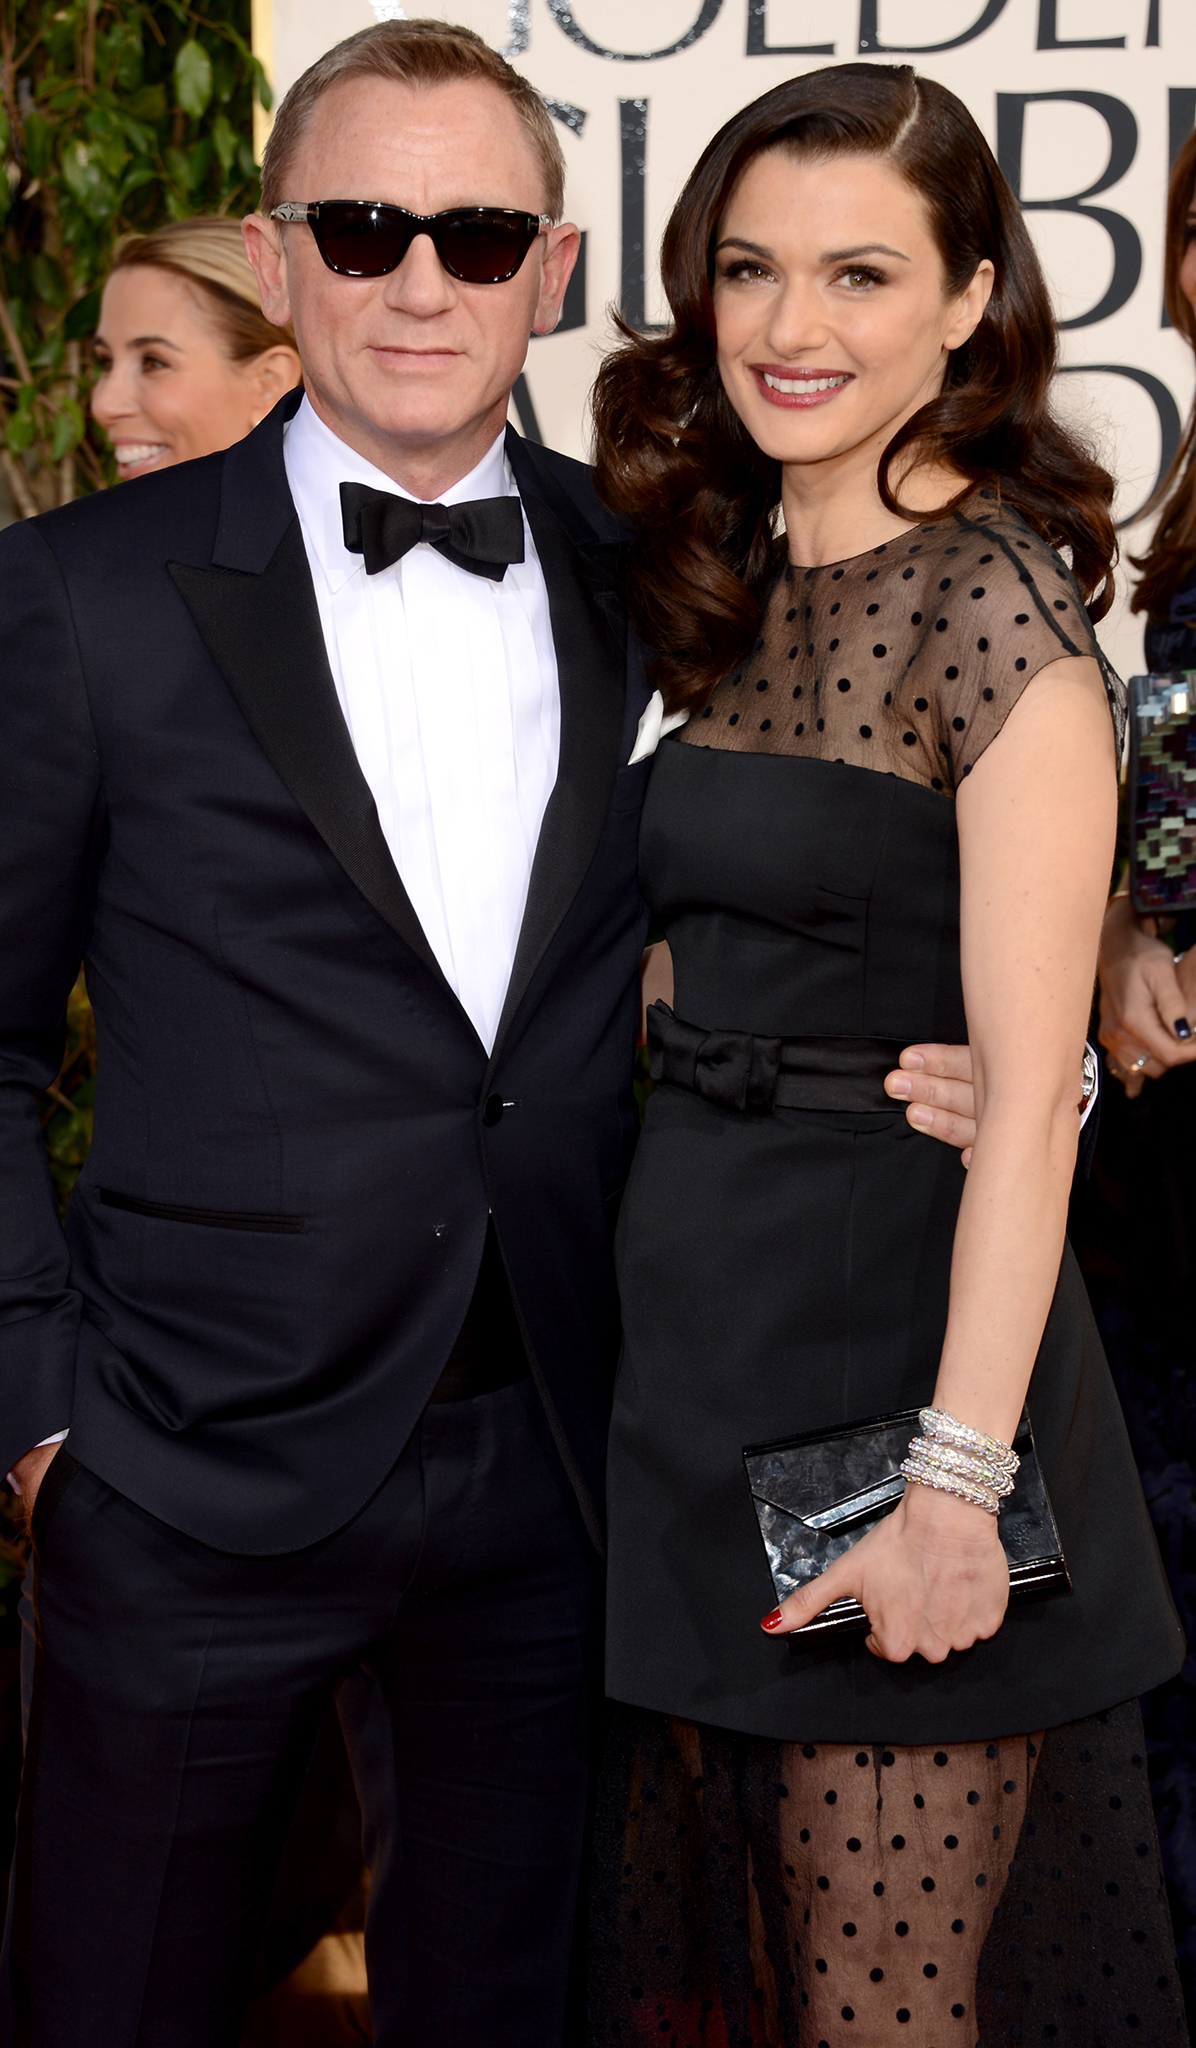 Daniel Craig and Rachel Weisz (Getty Images)